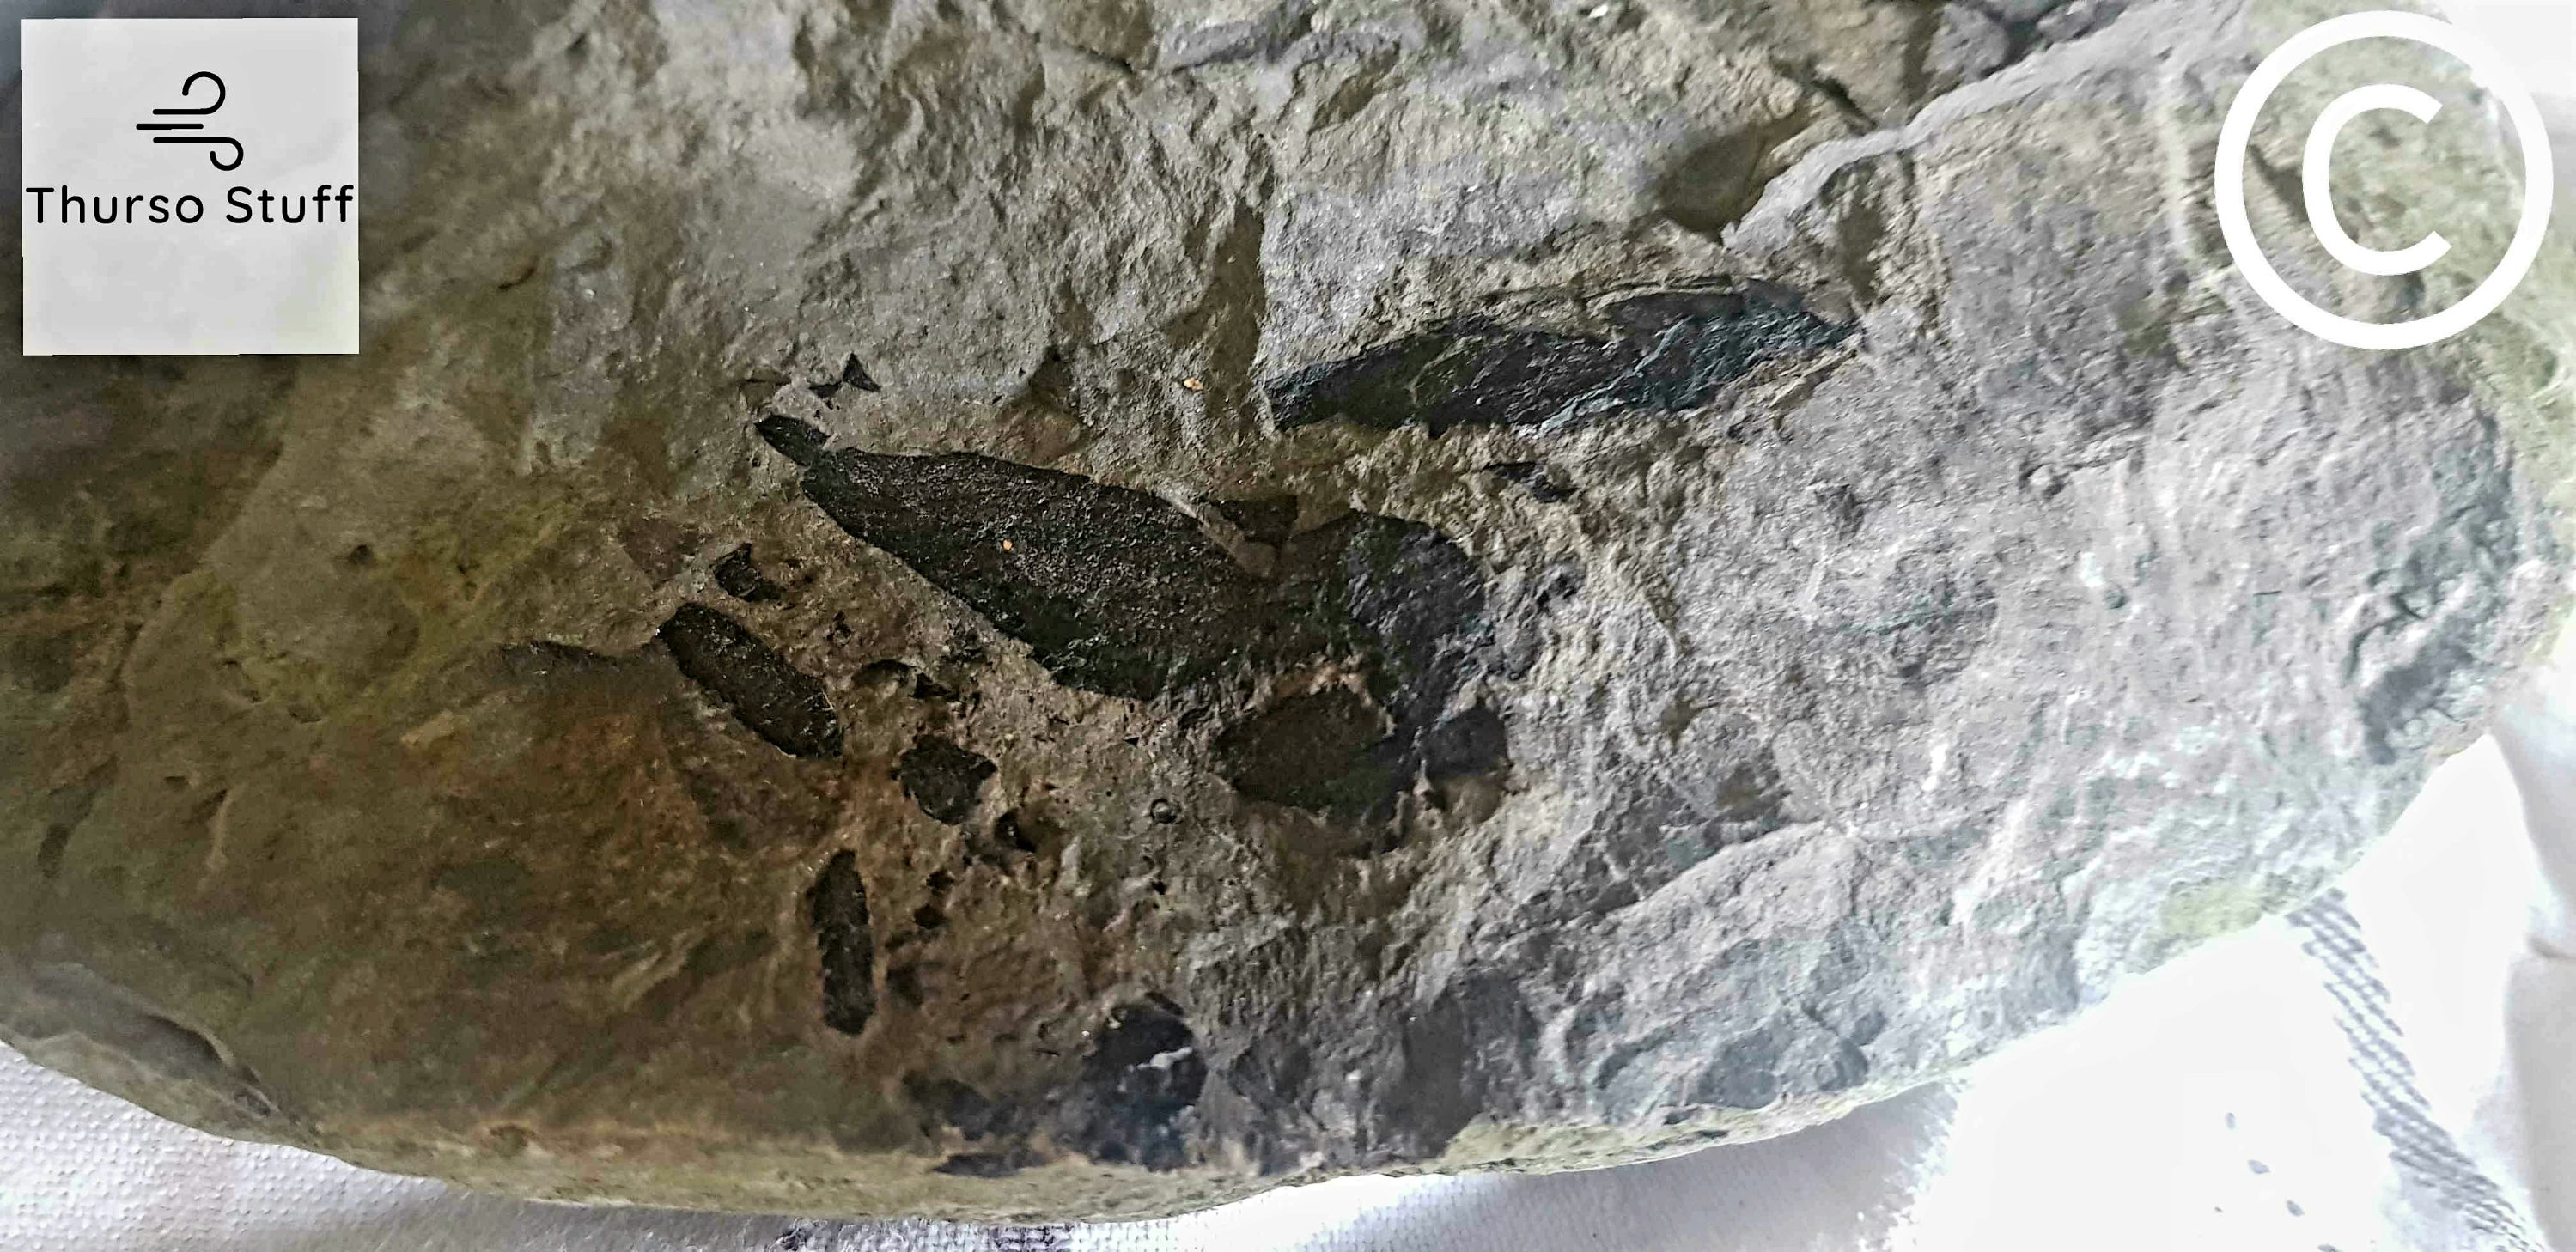 a black fish fossil on a grey rock